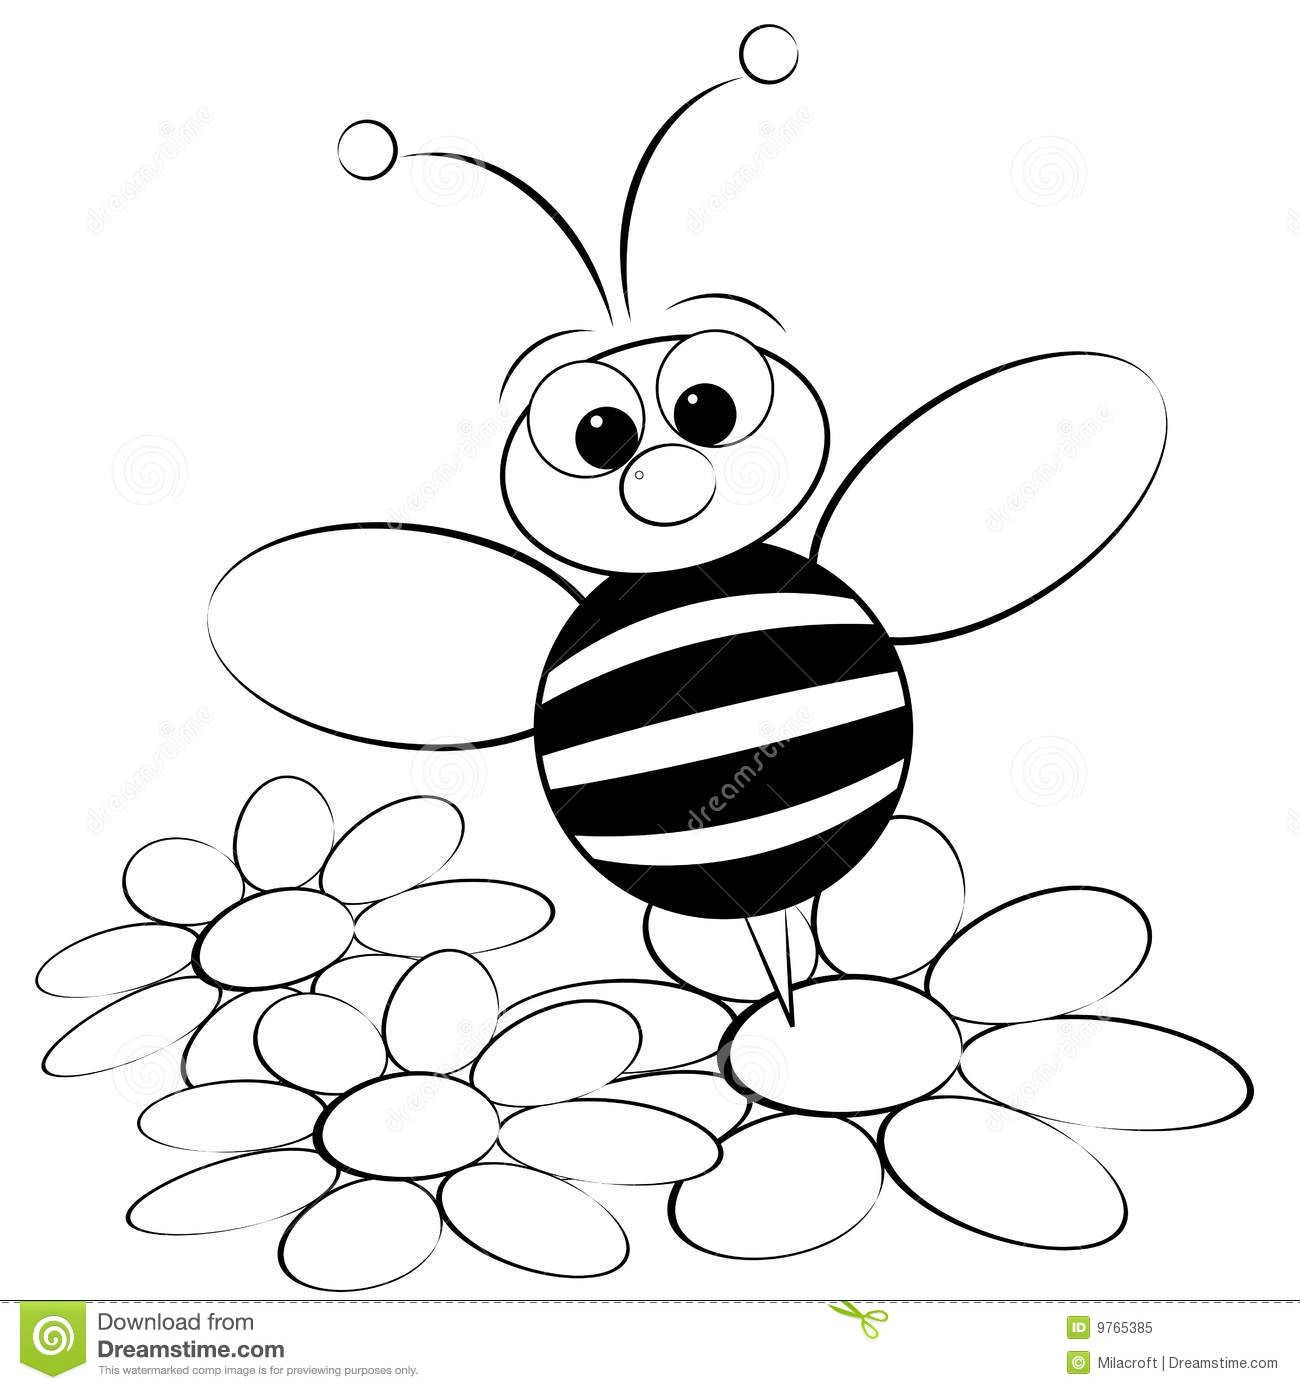 Bumble Bee Coloring Page Free Download Bumble Bee Coloring Page Free Download